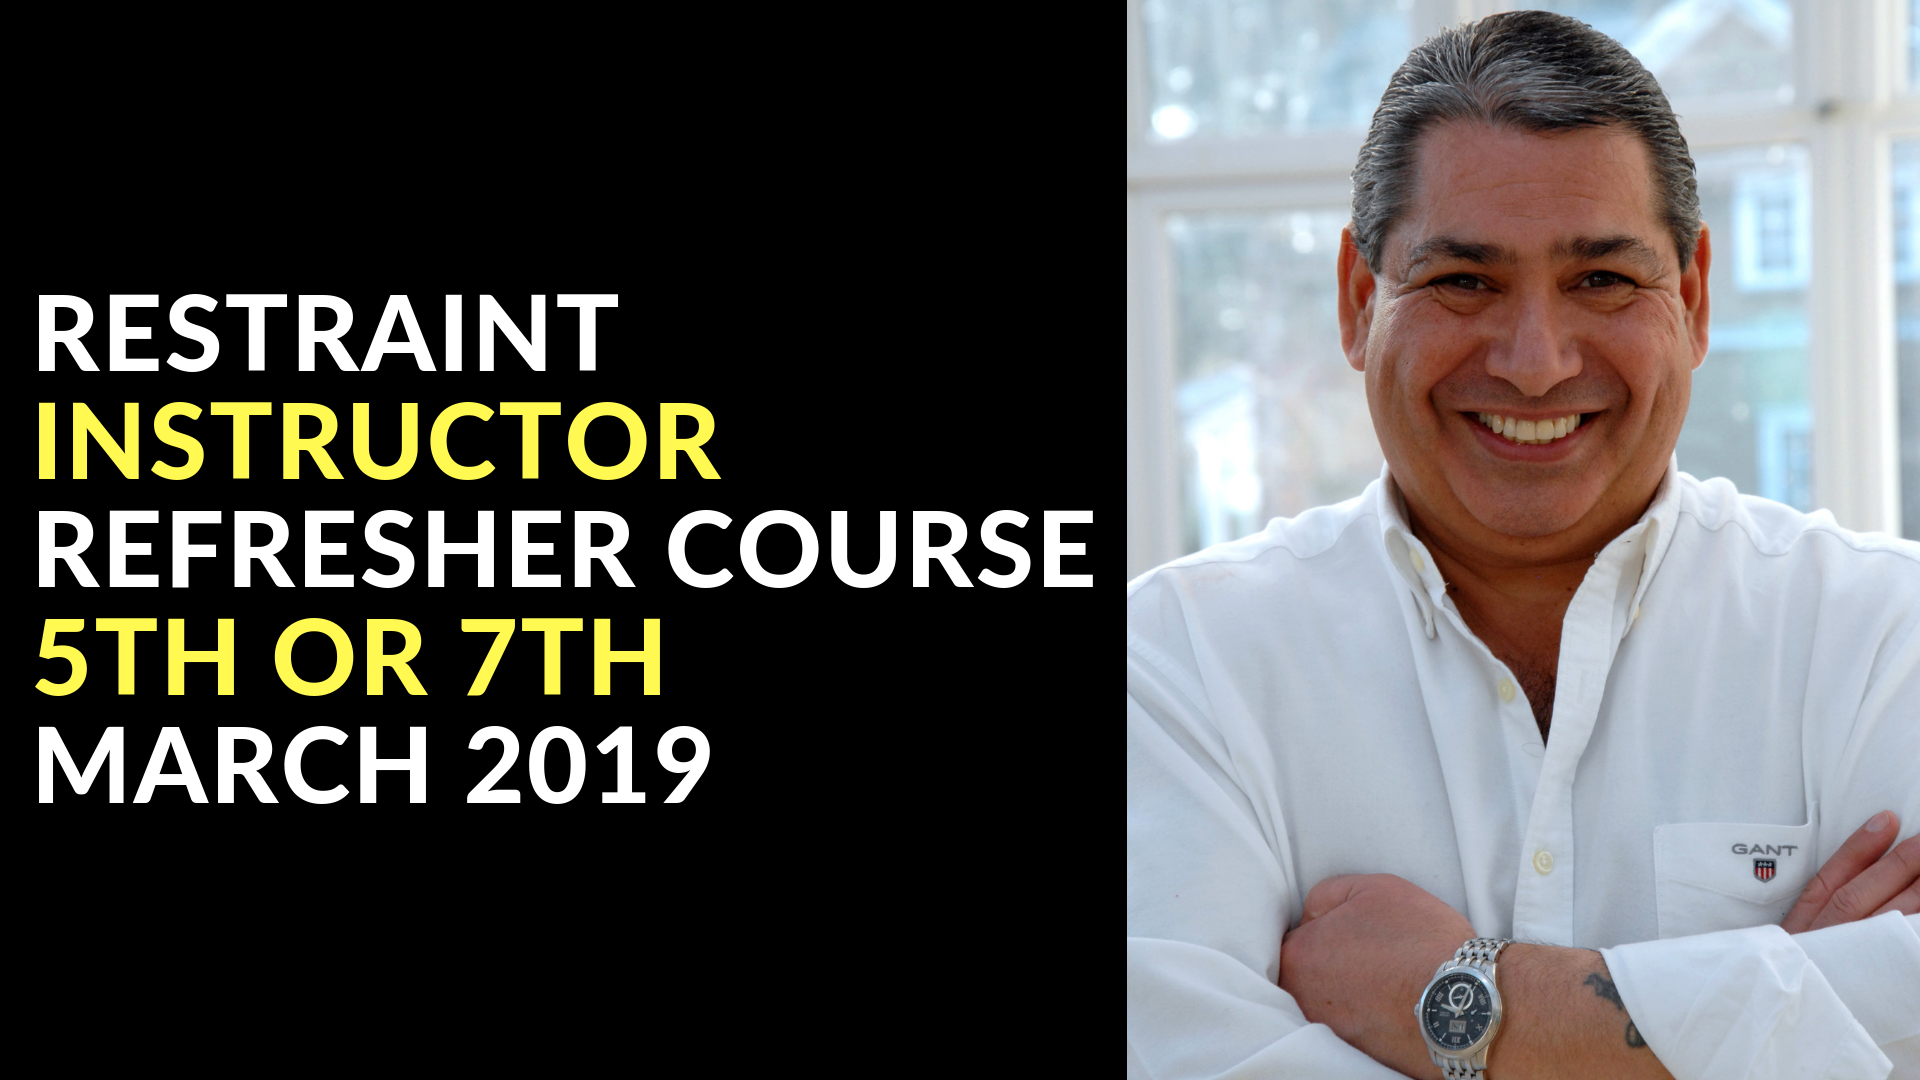 RESTRAINT INSTRUCTOR REFRESHER COURSE 5TH OR 7TH MARCH 2019